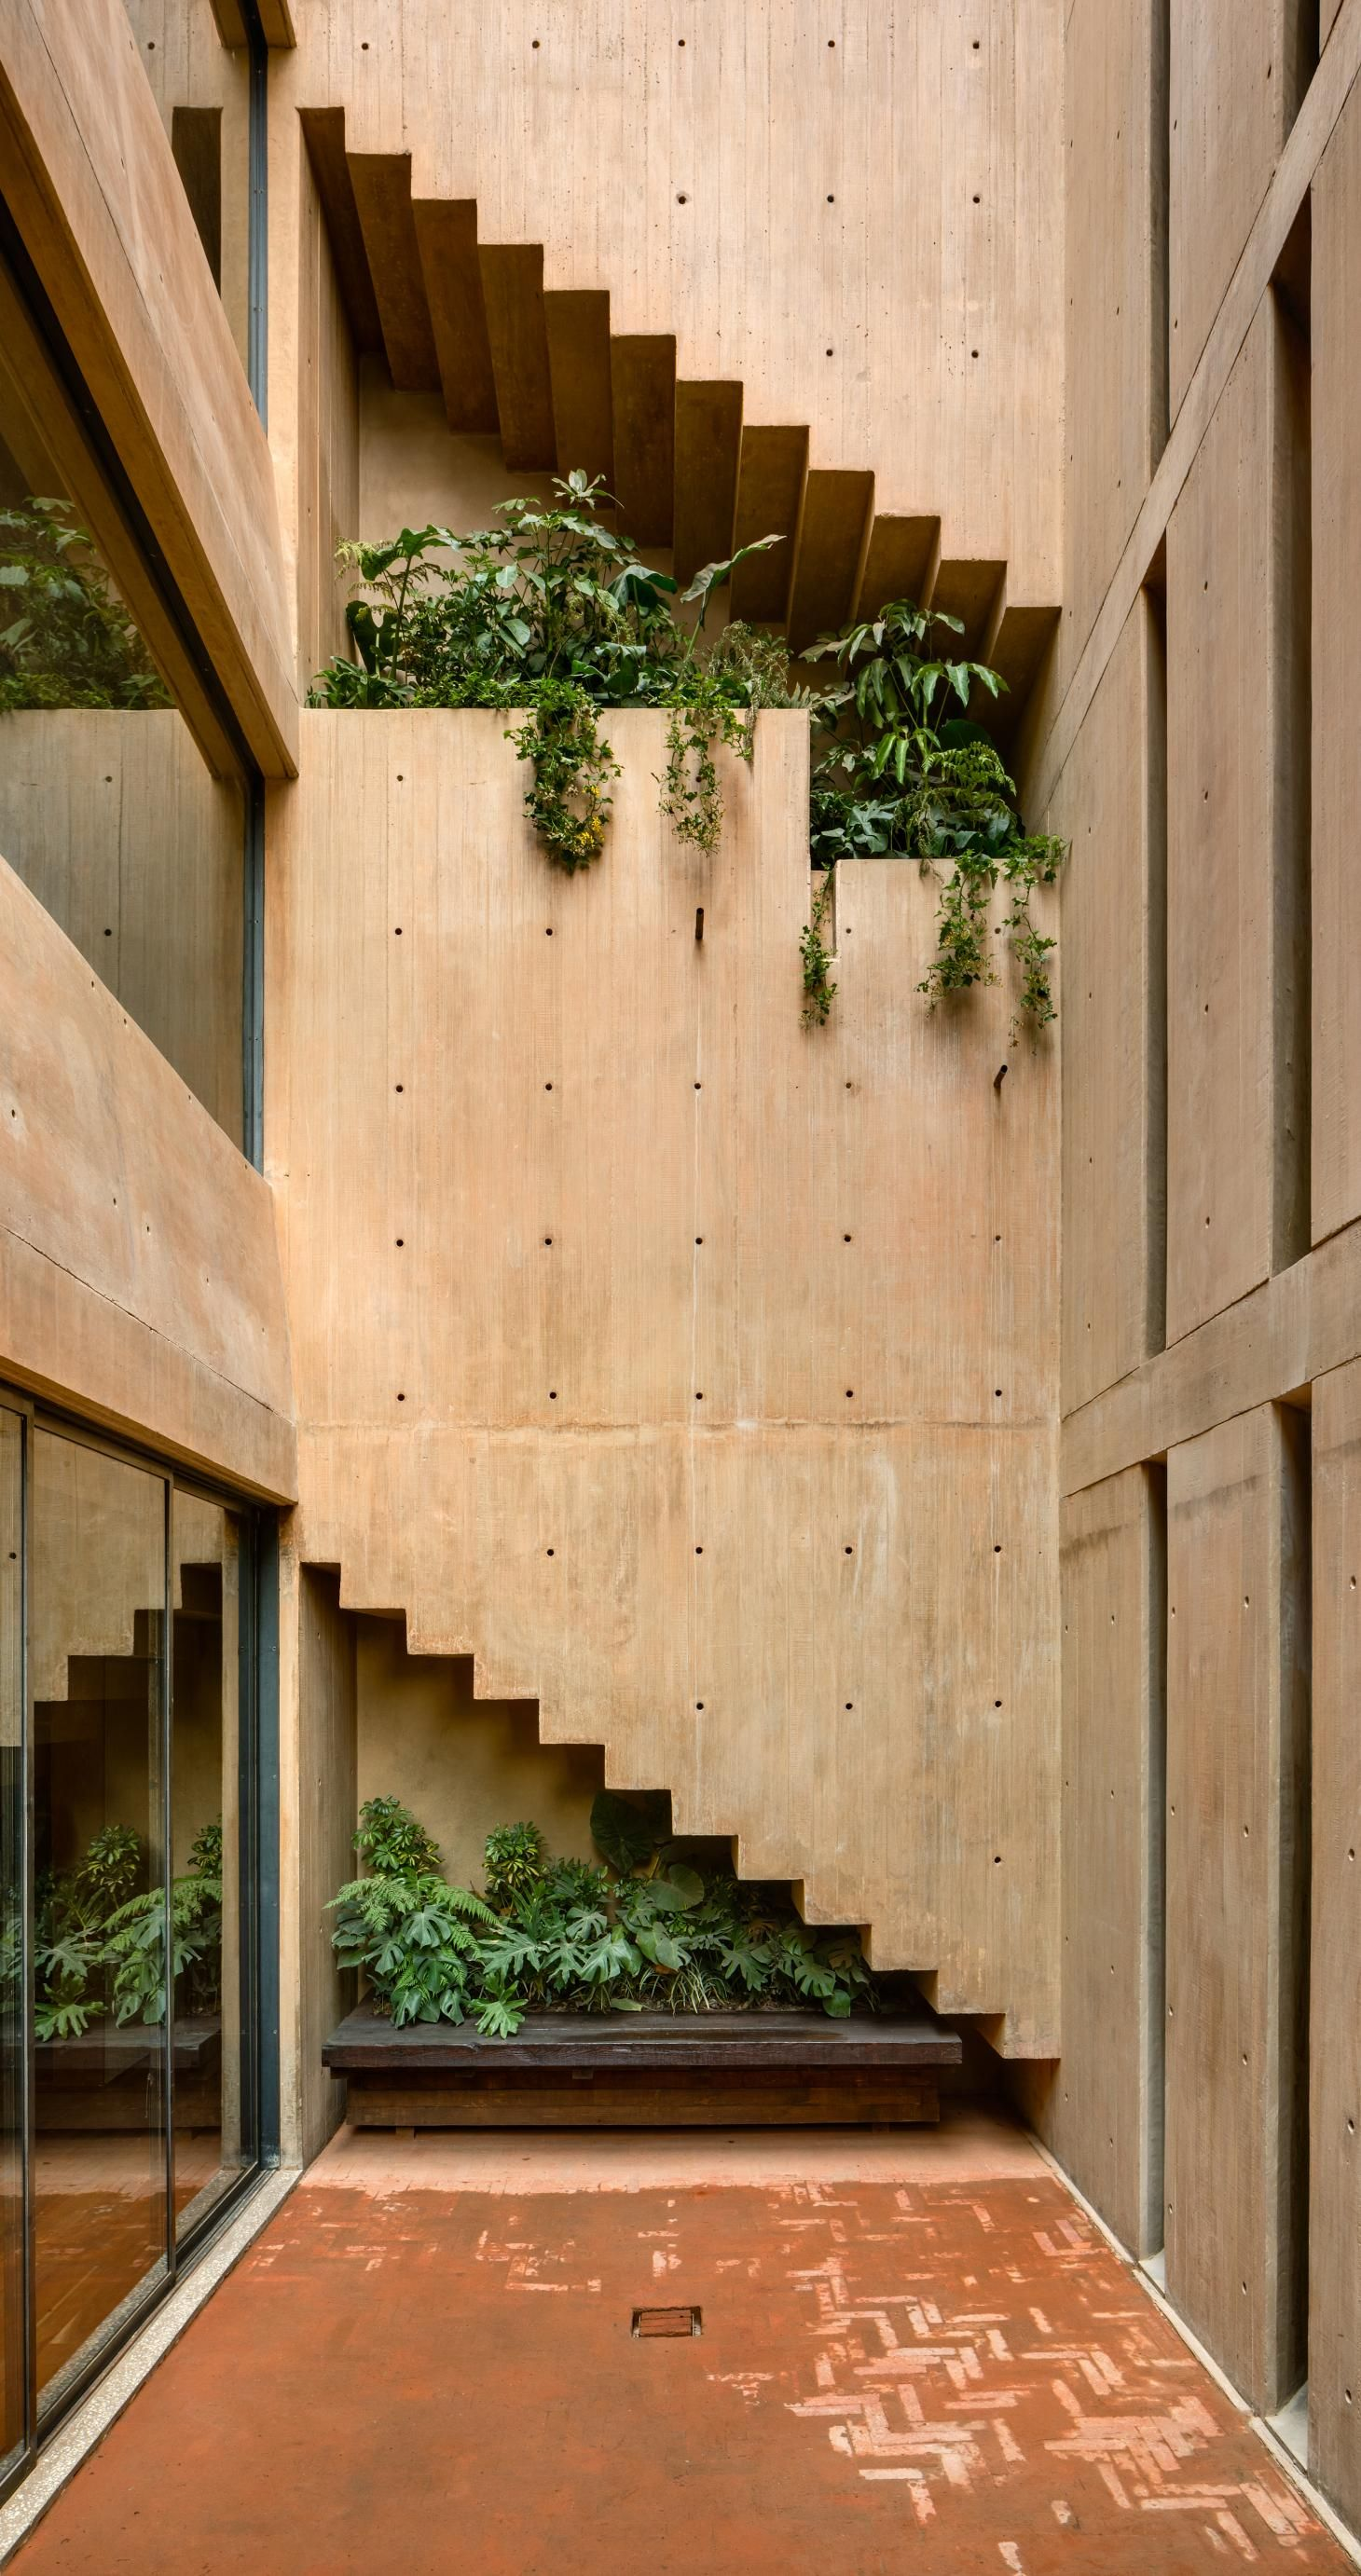 Architect Hector Barroso's concrete housing is bui